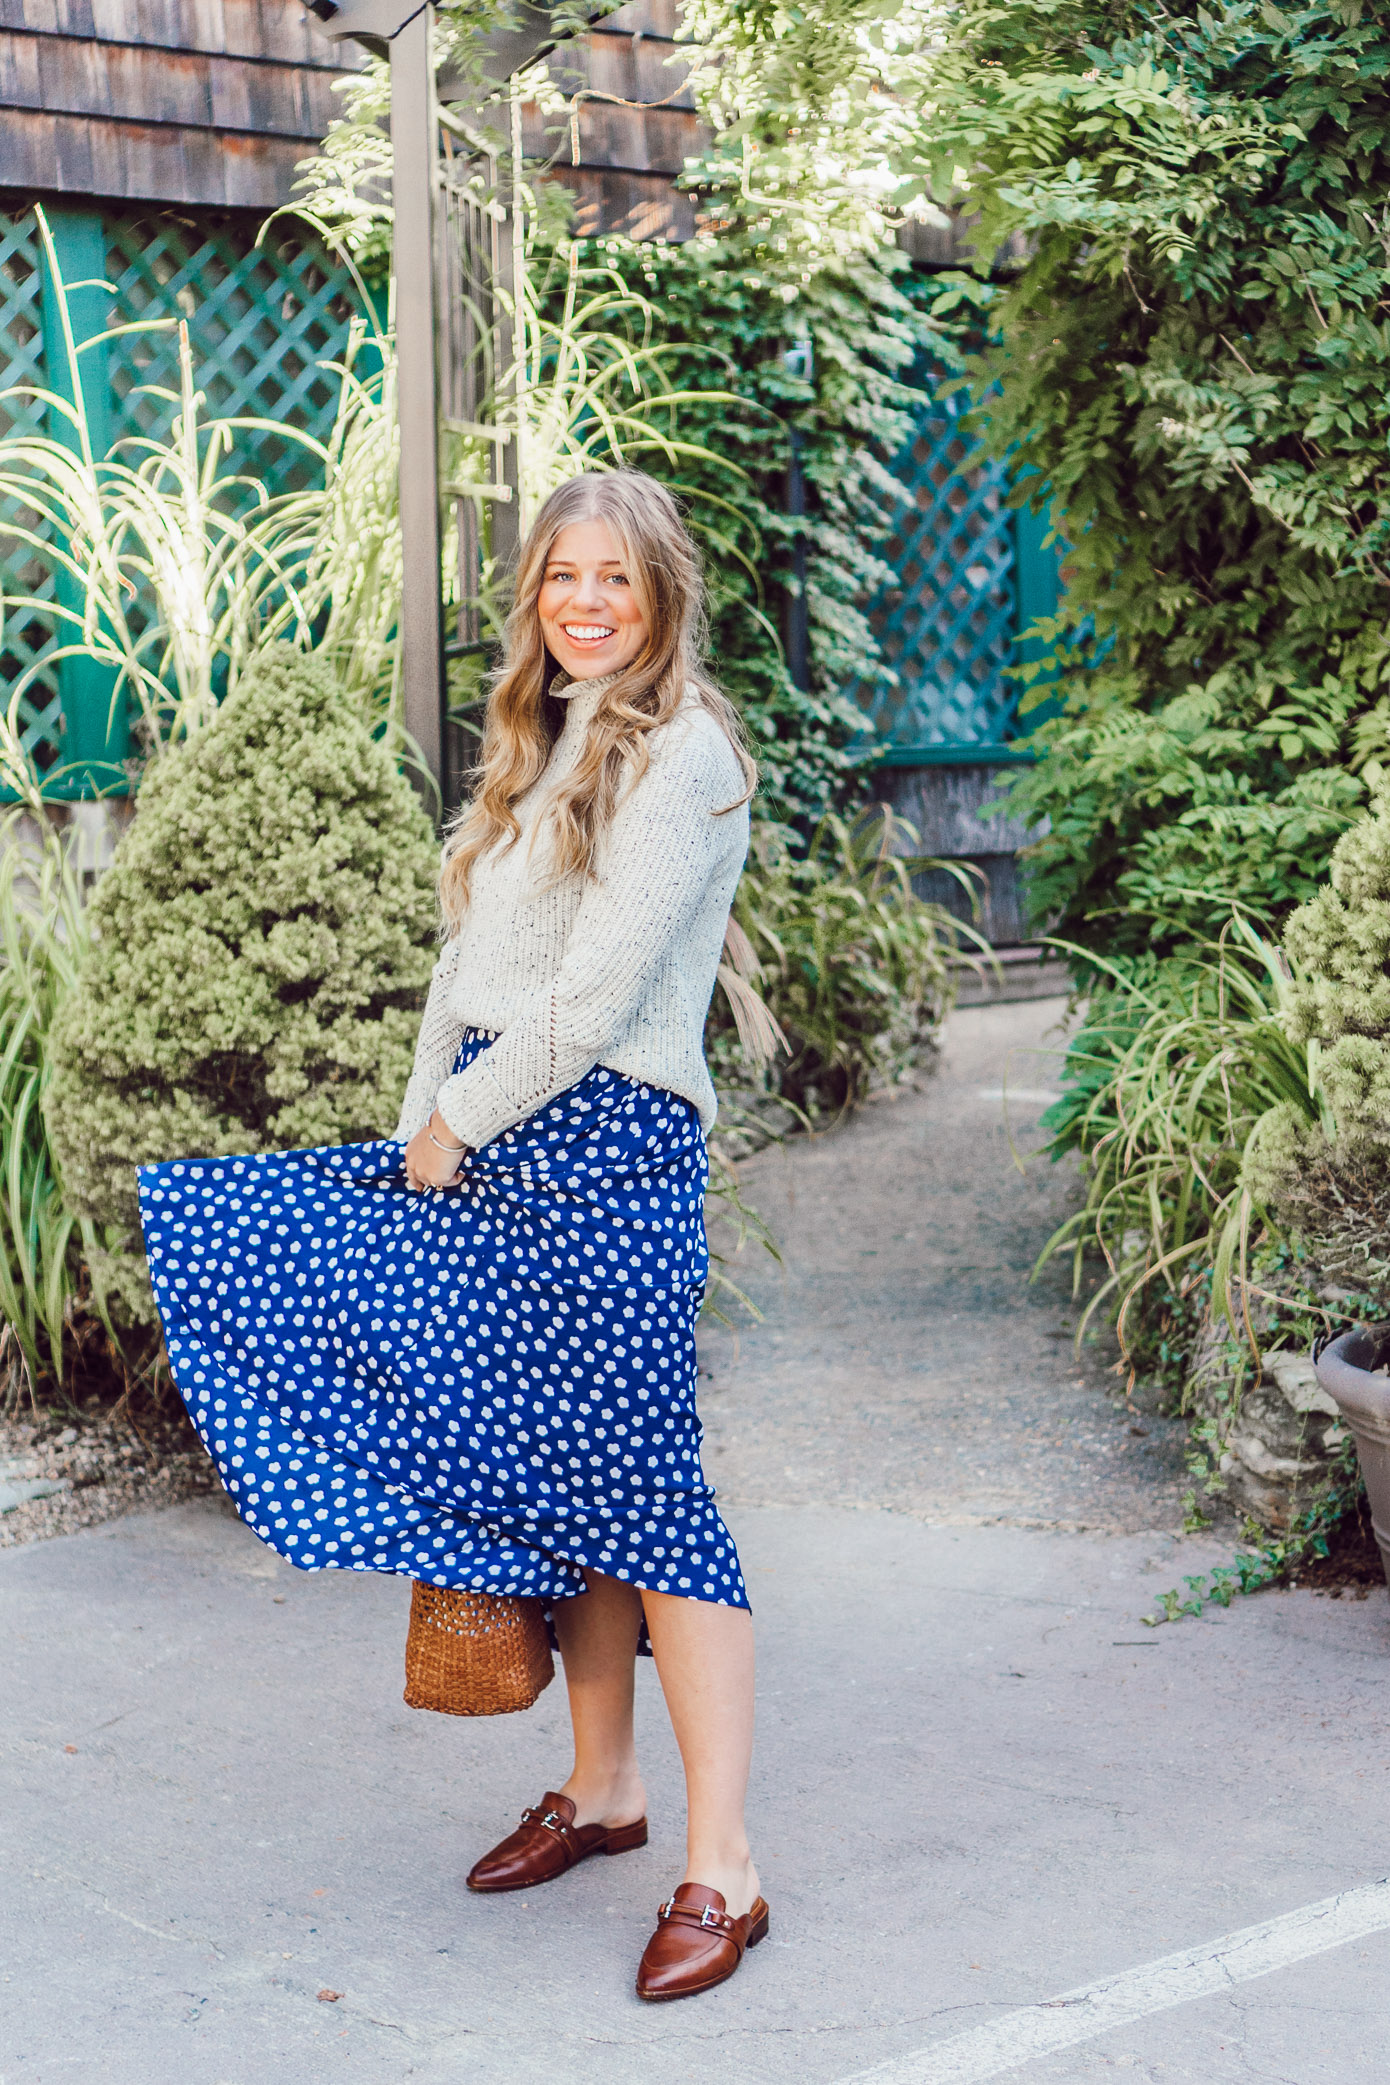 Fall Polka Dots | Kate Spade New York Cloud Dot Mid Dress and Joie Adaliz Sweater styled on Louella Reese